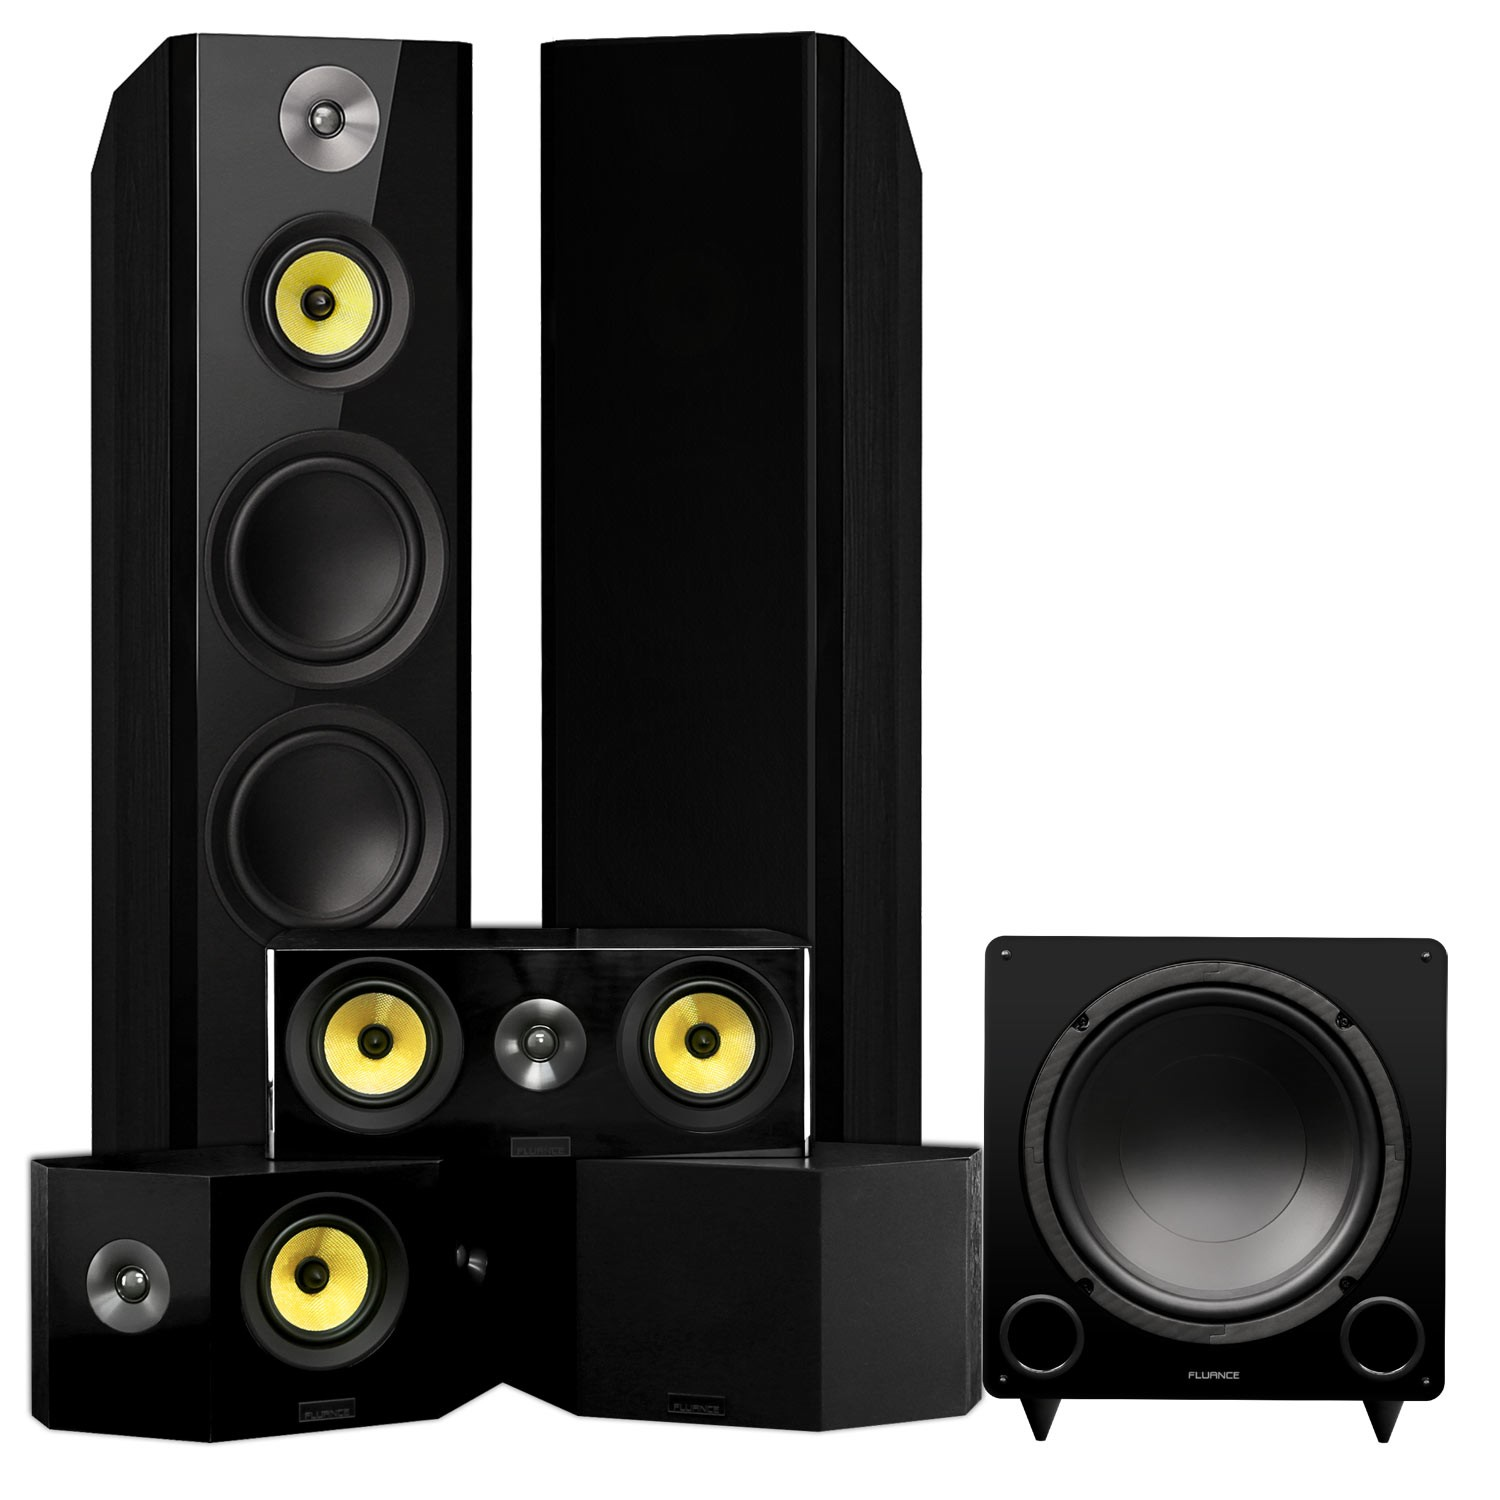 Signature Series Hi-Fi 5.1 Home Theater Speaker System with Bipolar Speakers - Main